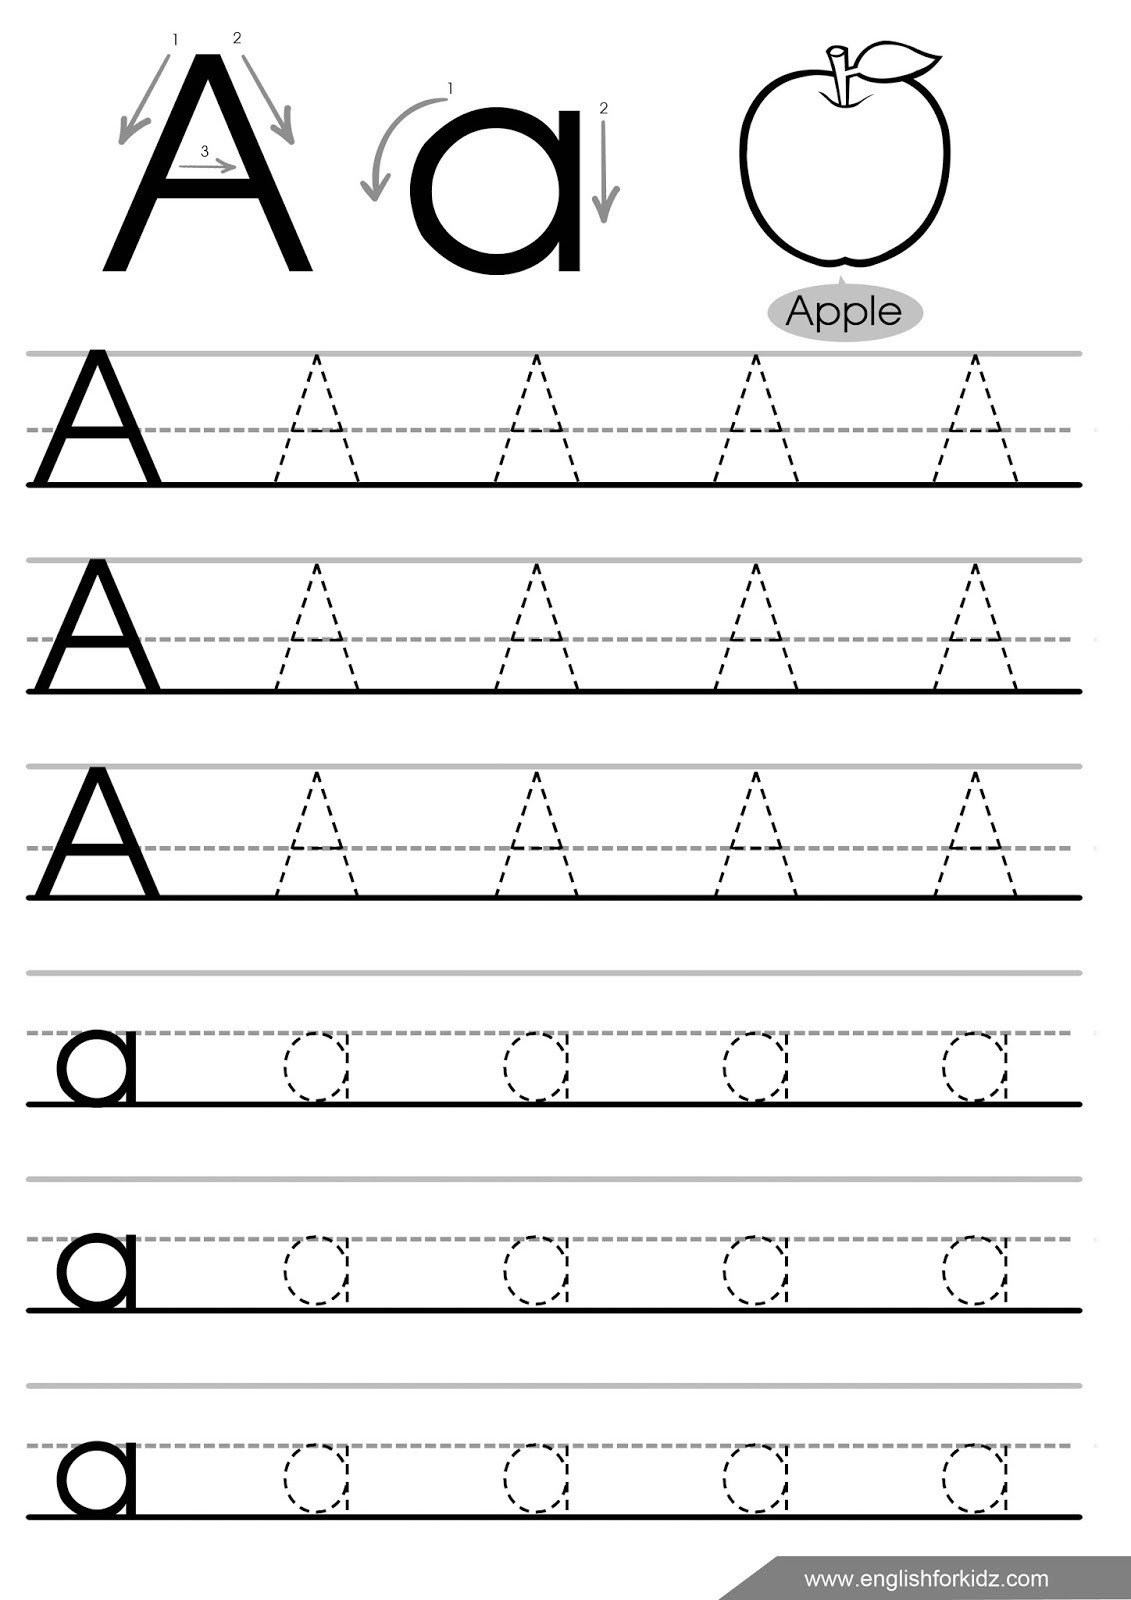 Lowercase Alphabet Tracing Worksheets Letter Tracing Worksheets Letters A J